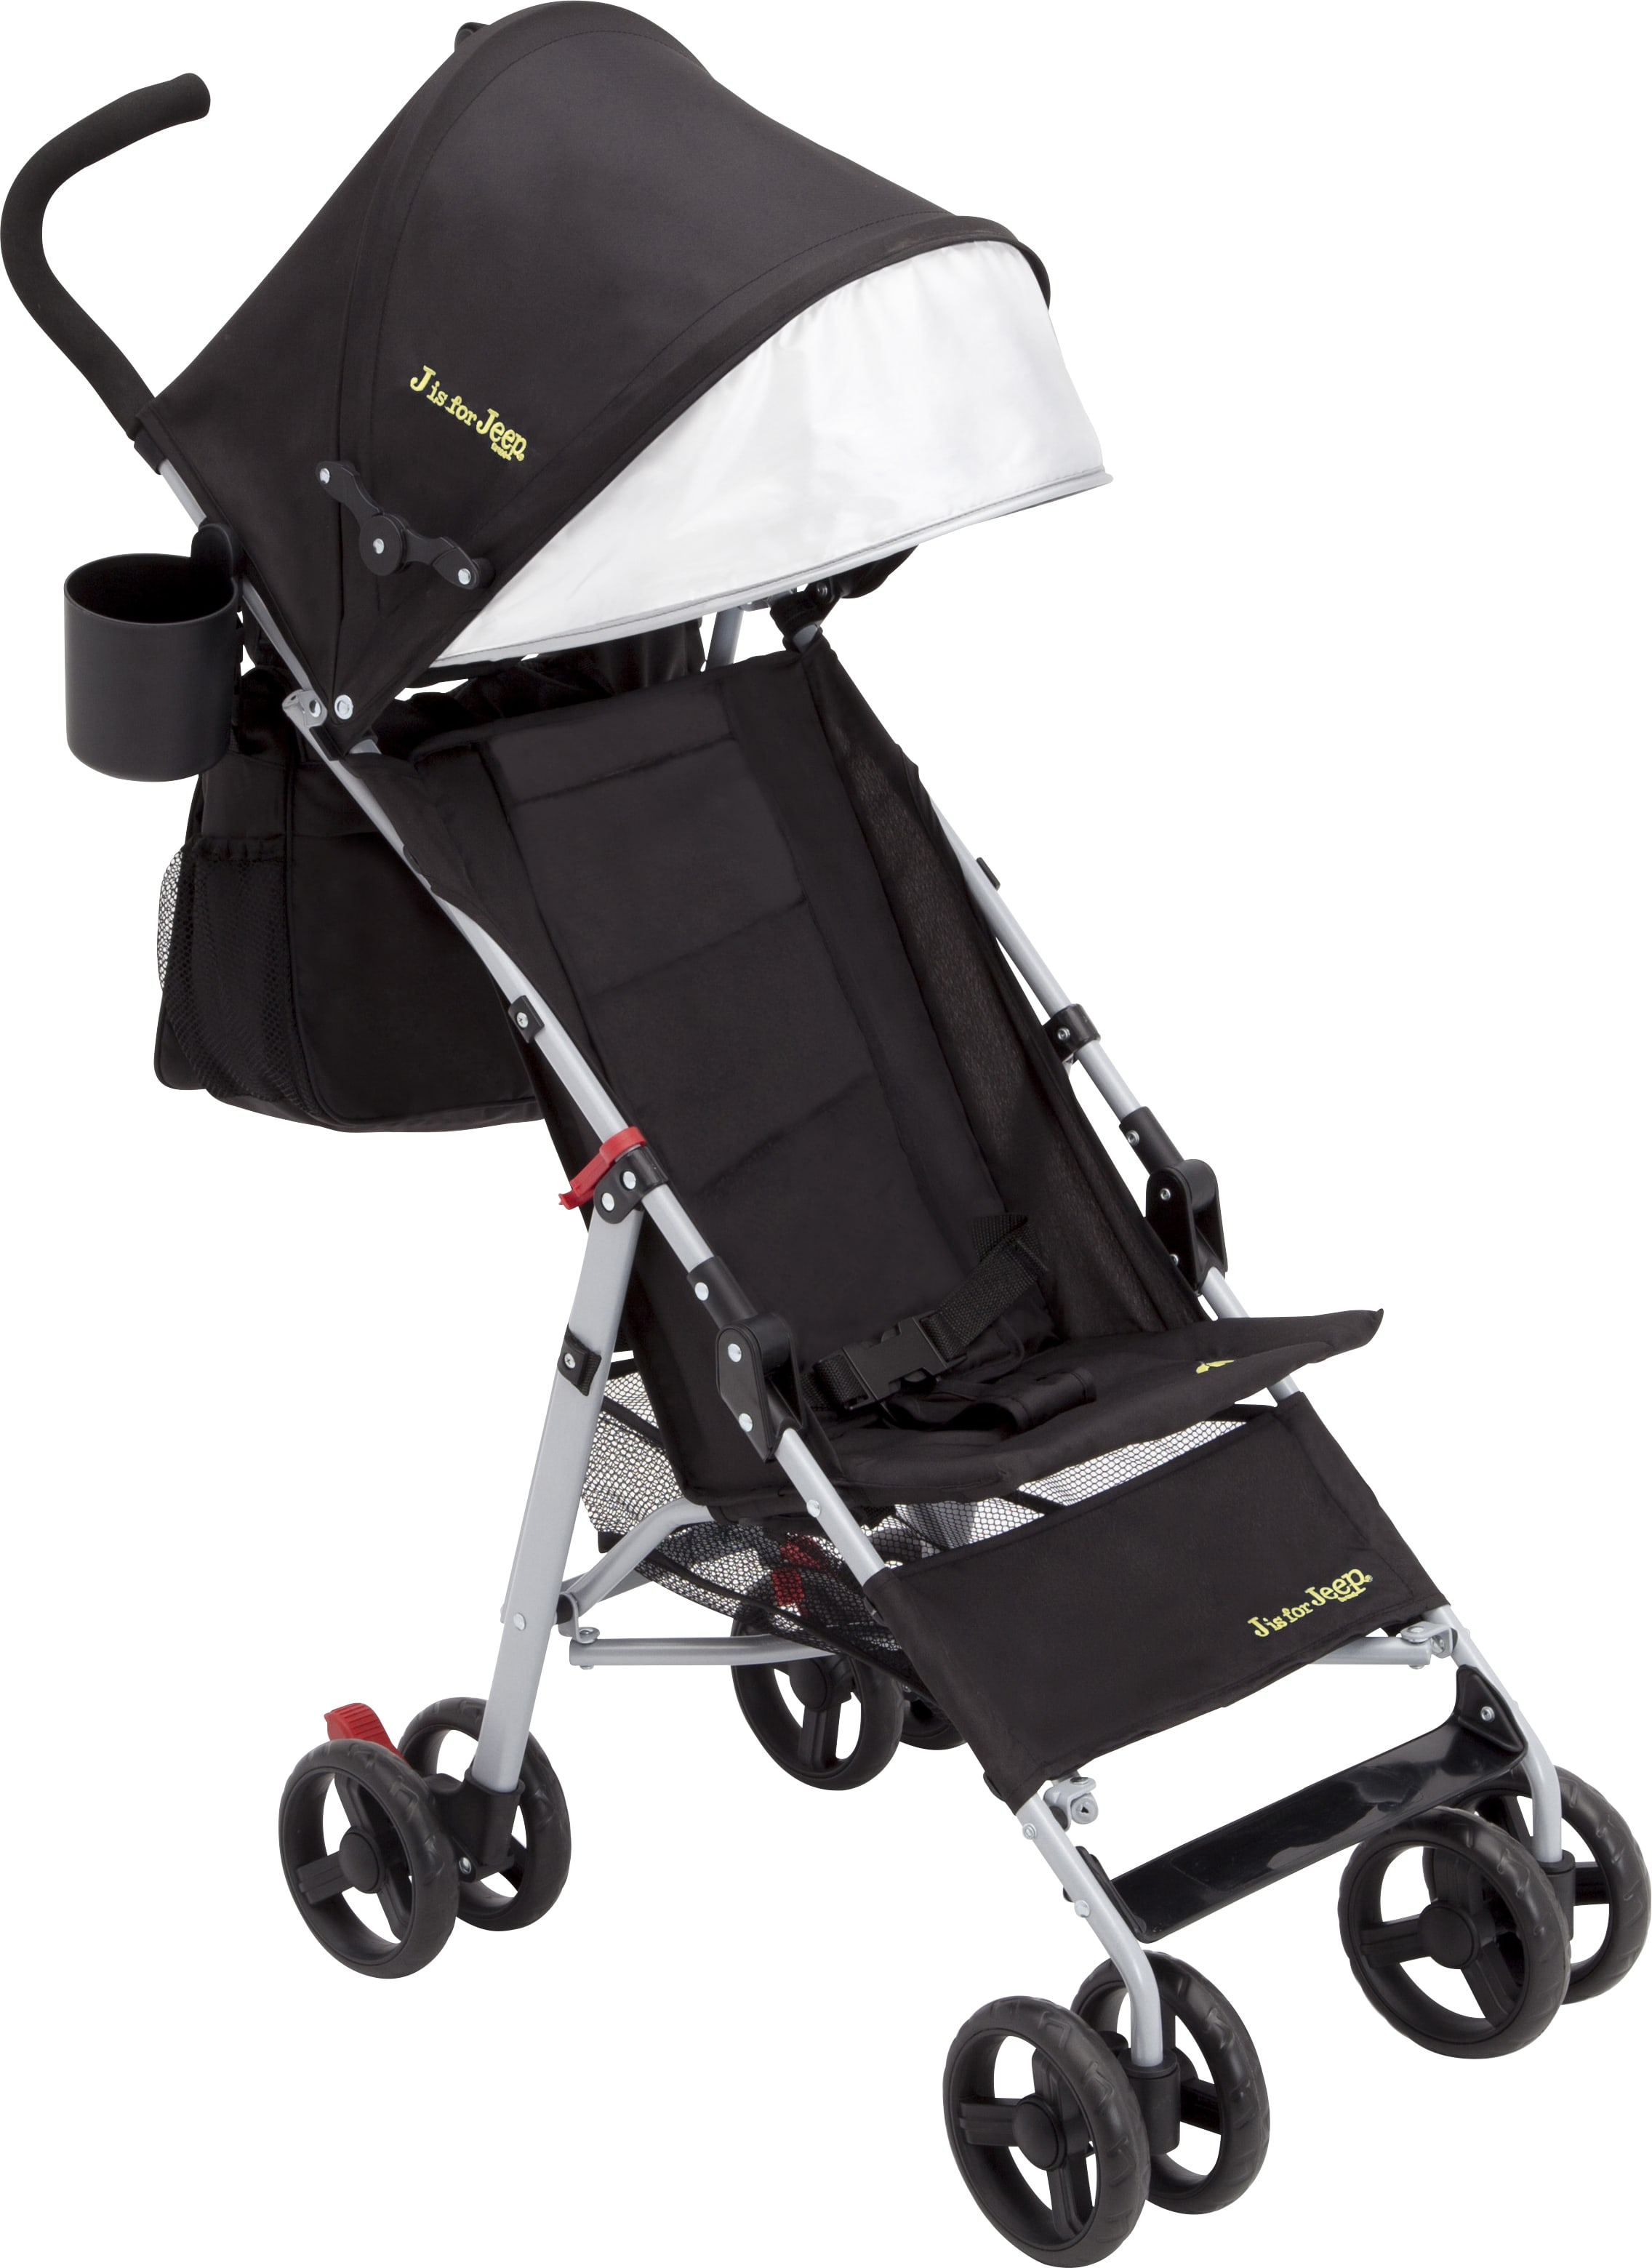 Strollers - Jeep North Star Stroller was sold for R699.00 ...